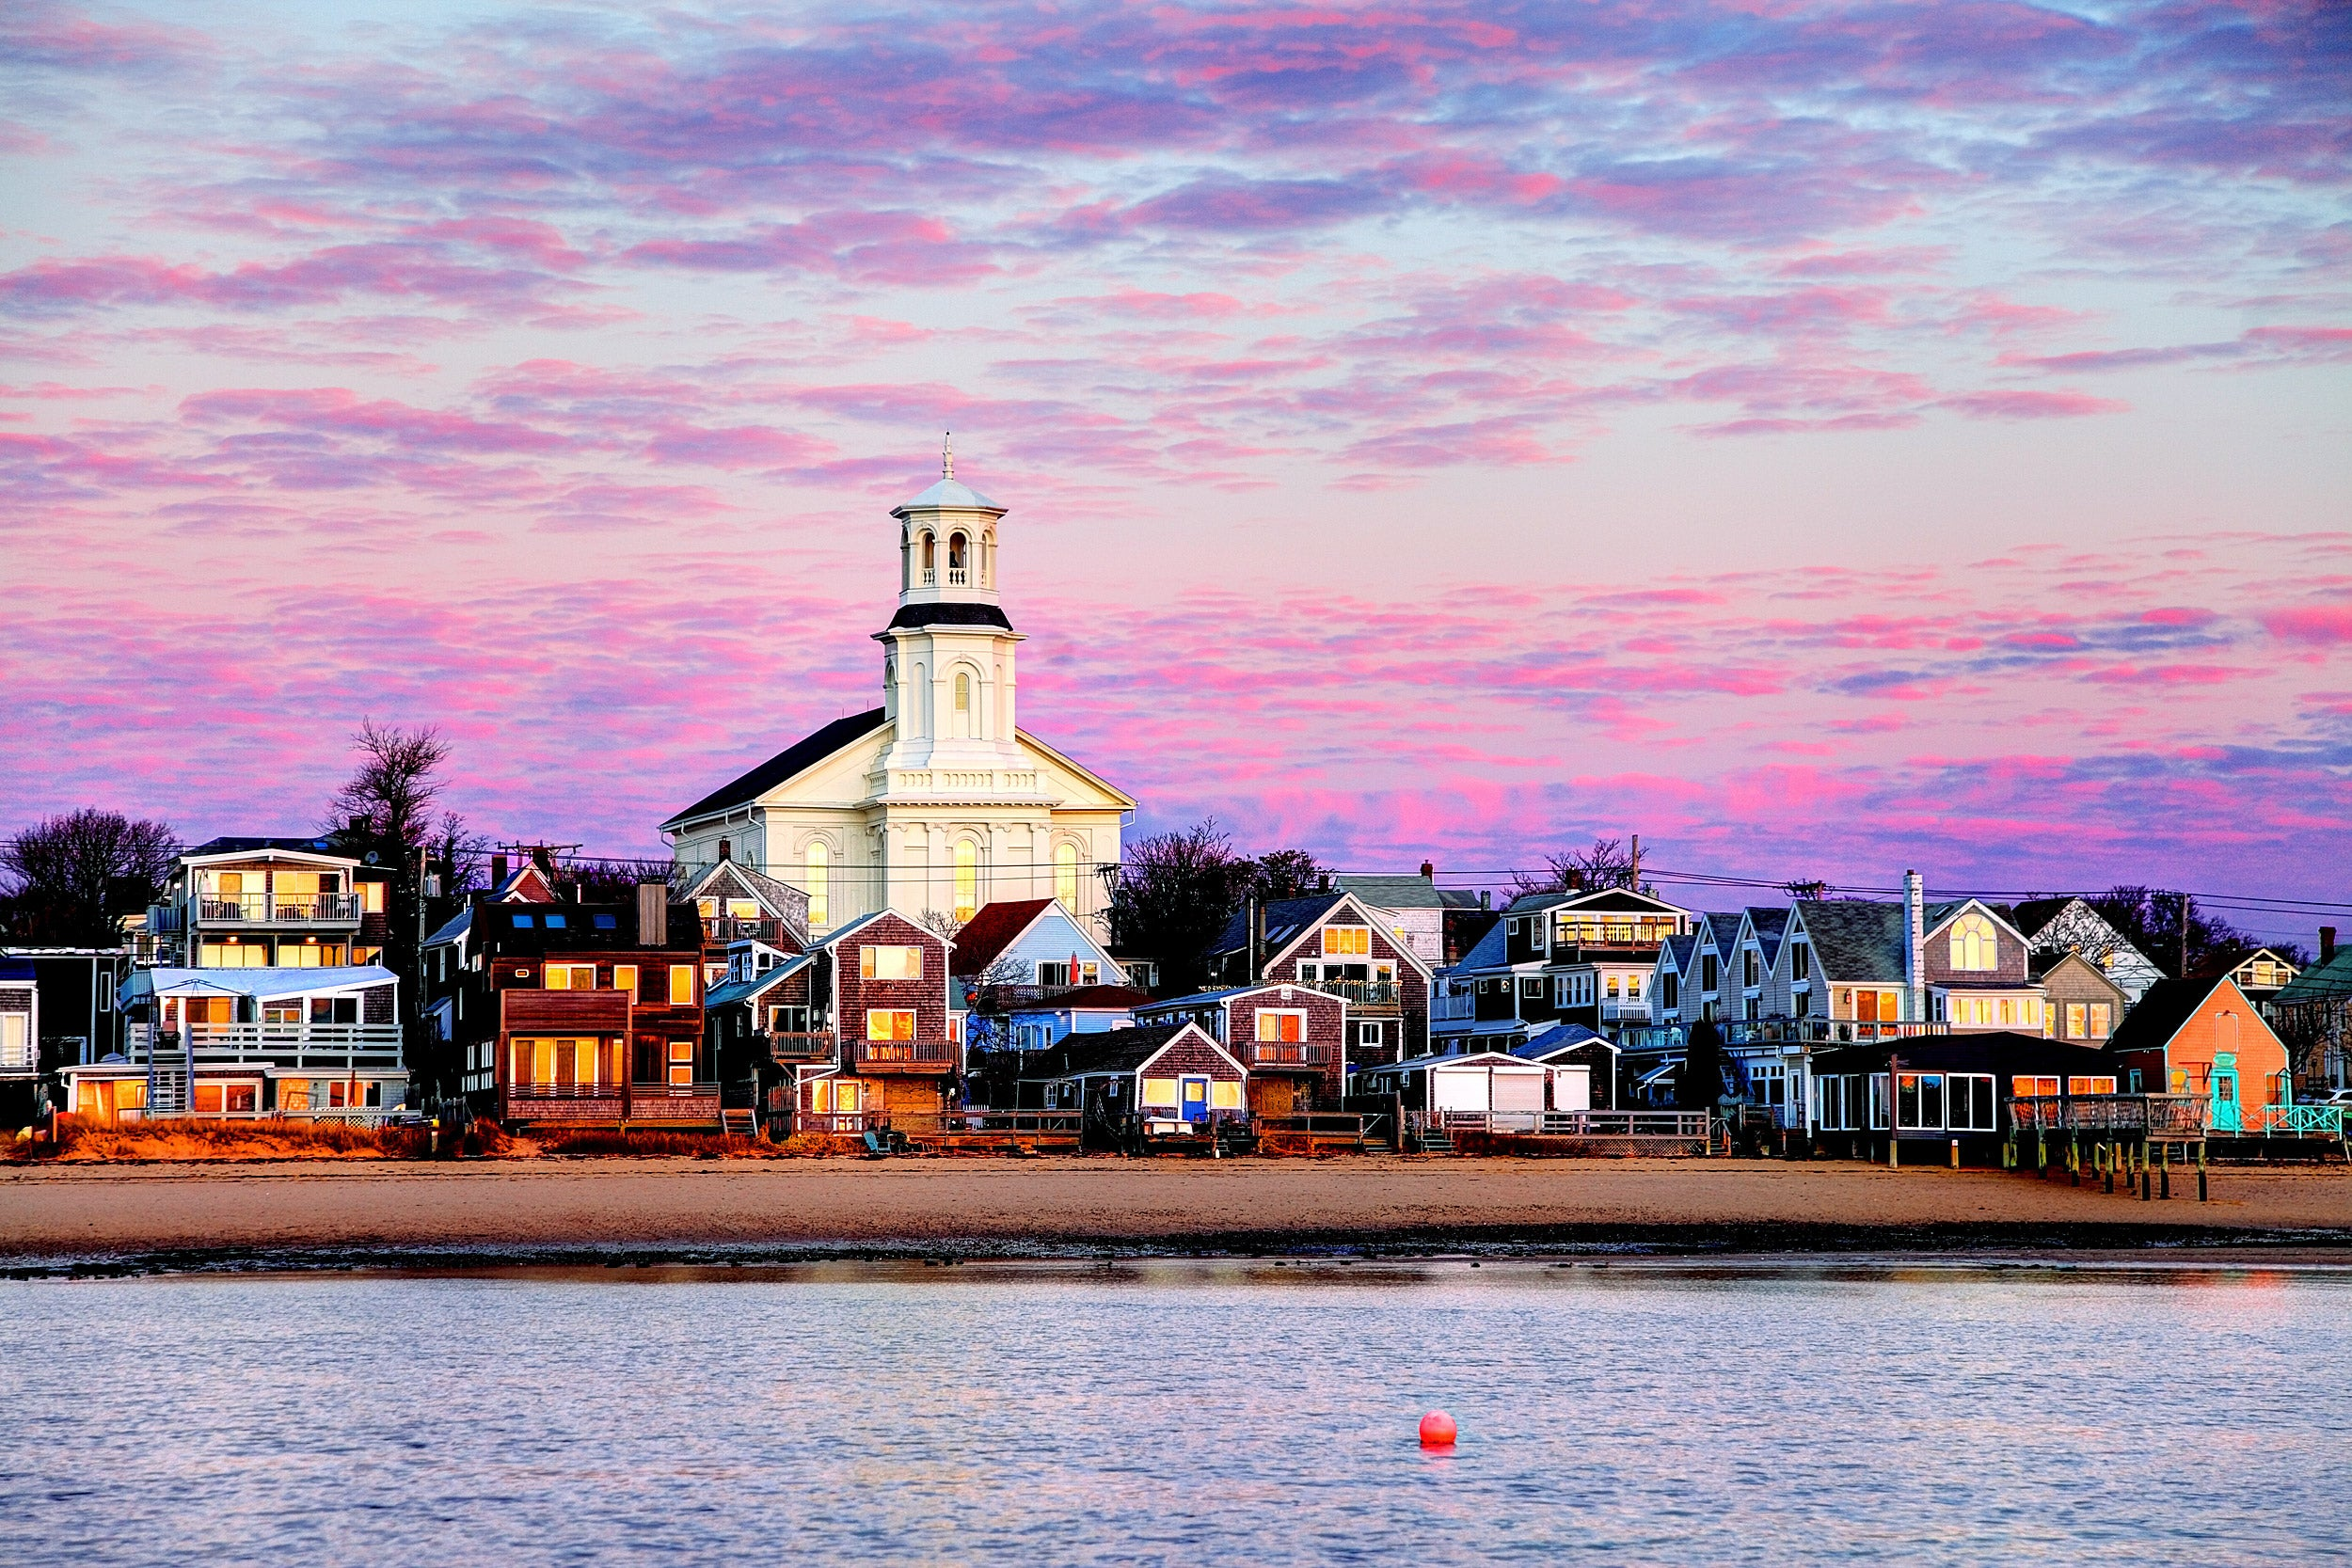 Sunset in Provincetown.